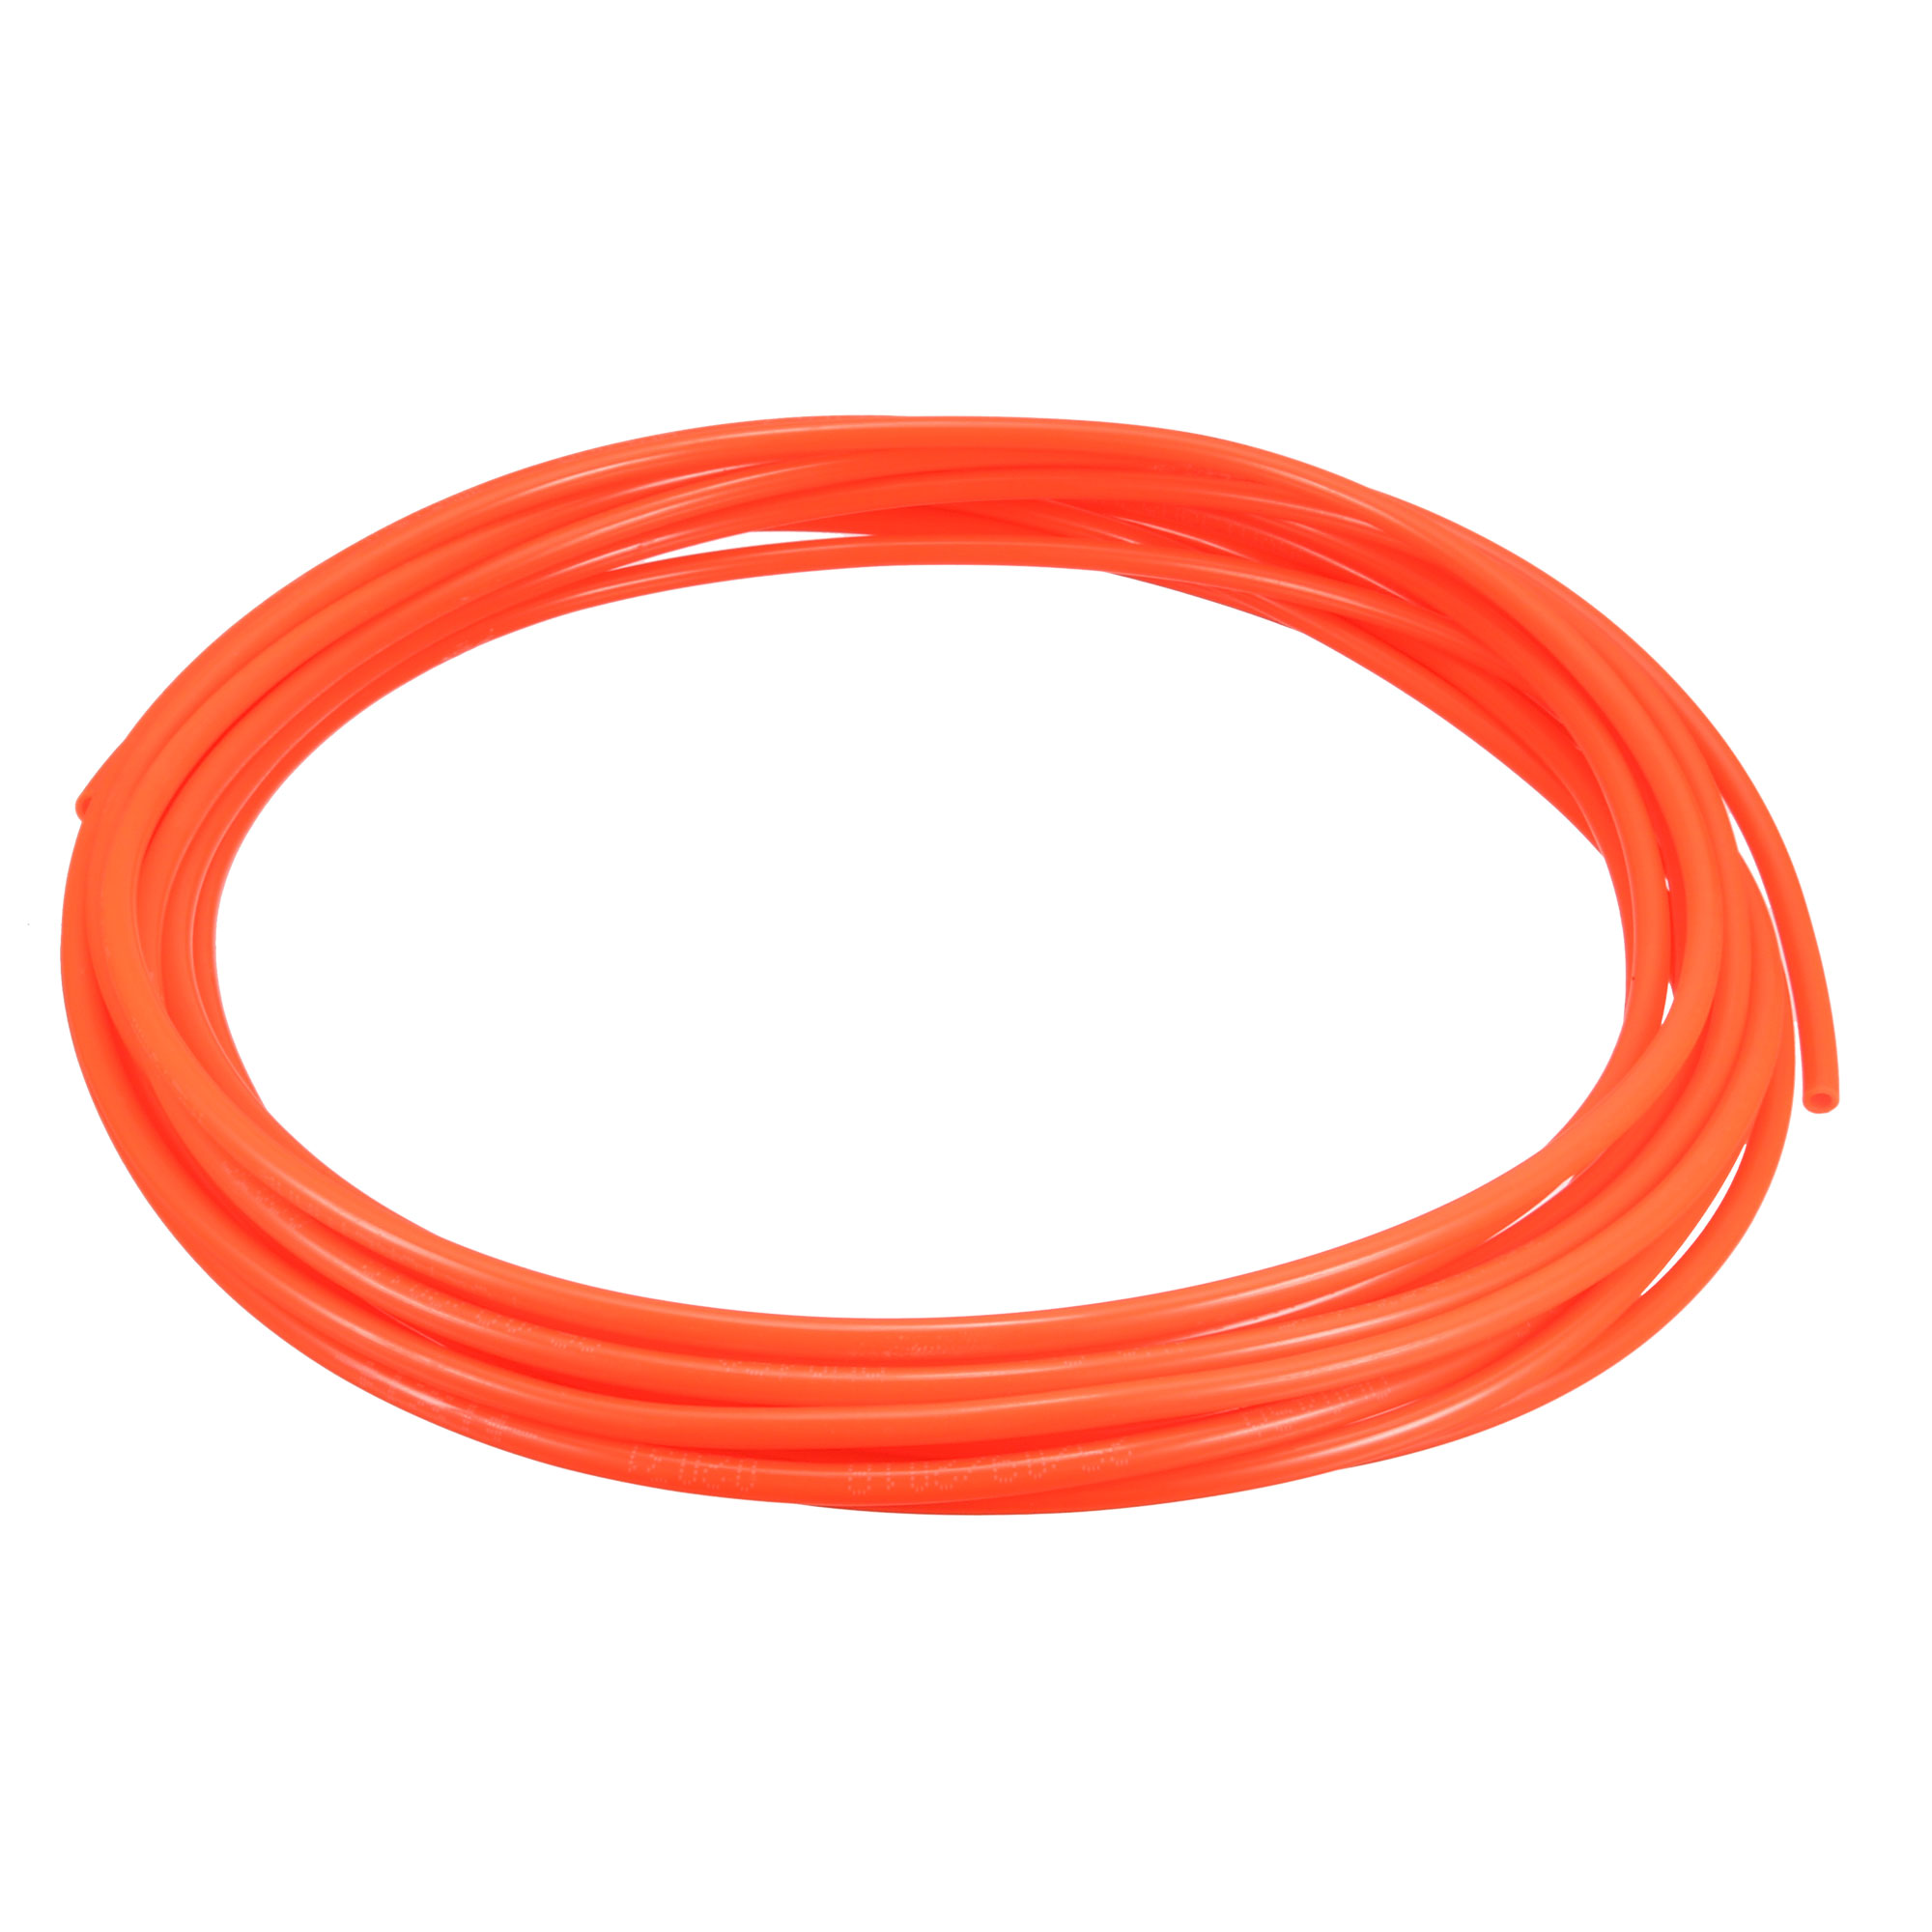 4mm OD x 2.5mm ID PU Pneumatic Air Tubing Pipe Hose 6M 20ft Red